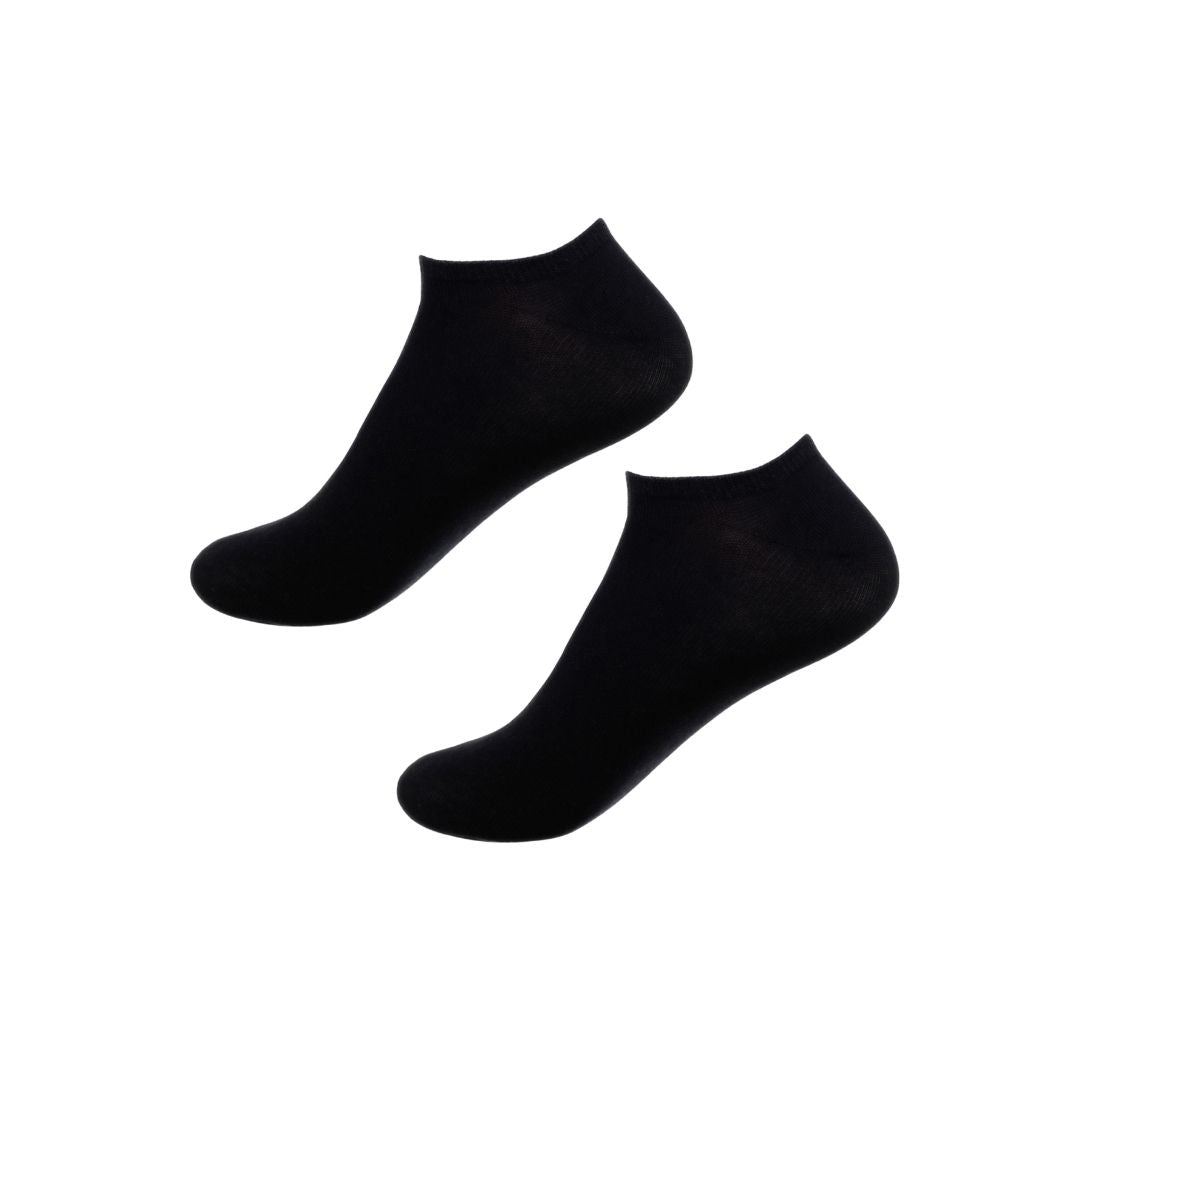 JettProof Seamless Feel Sensory Ankle Socks | Adult